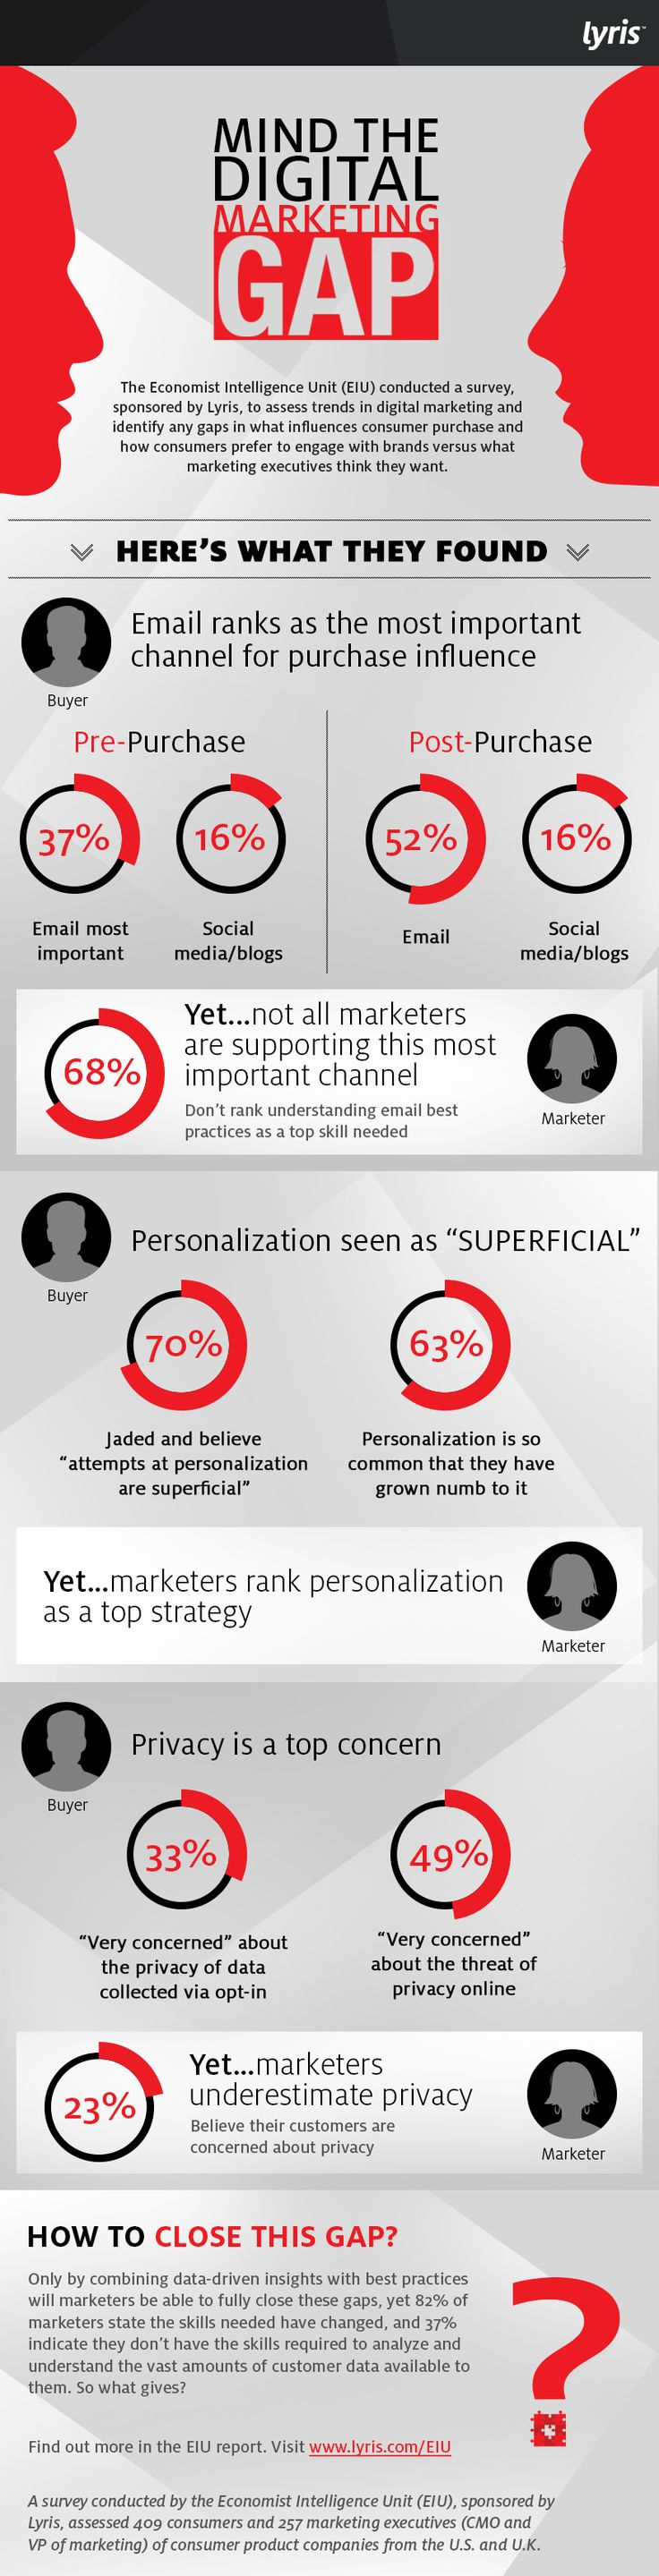 We teamed up with the Economist Intelligence Unit to survey 409 consumers and 257 marketing executives about everything from personalization to privacy – the executive summary can be viewed here. The results highlight some of the most compelling trends in marketing and give insight into where any misunderstandings lie and, most importantly, what marketers can do about it. Learn more about the survey here.